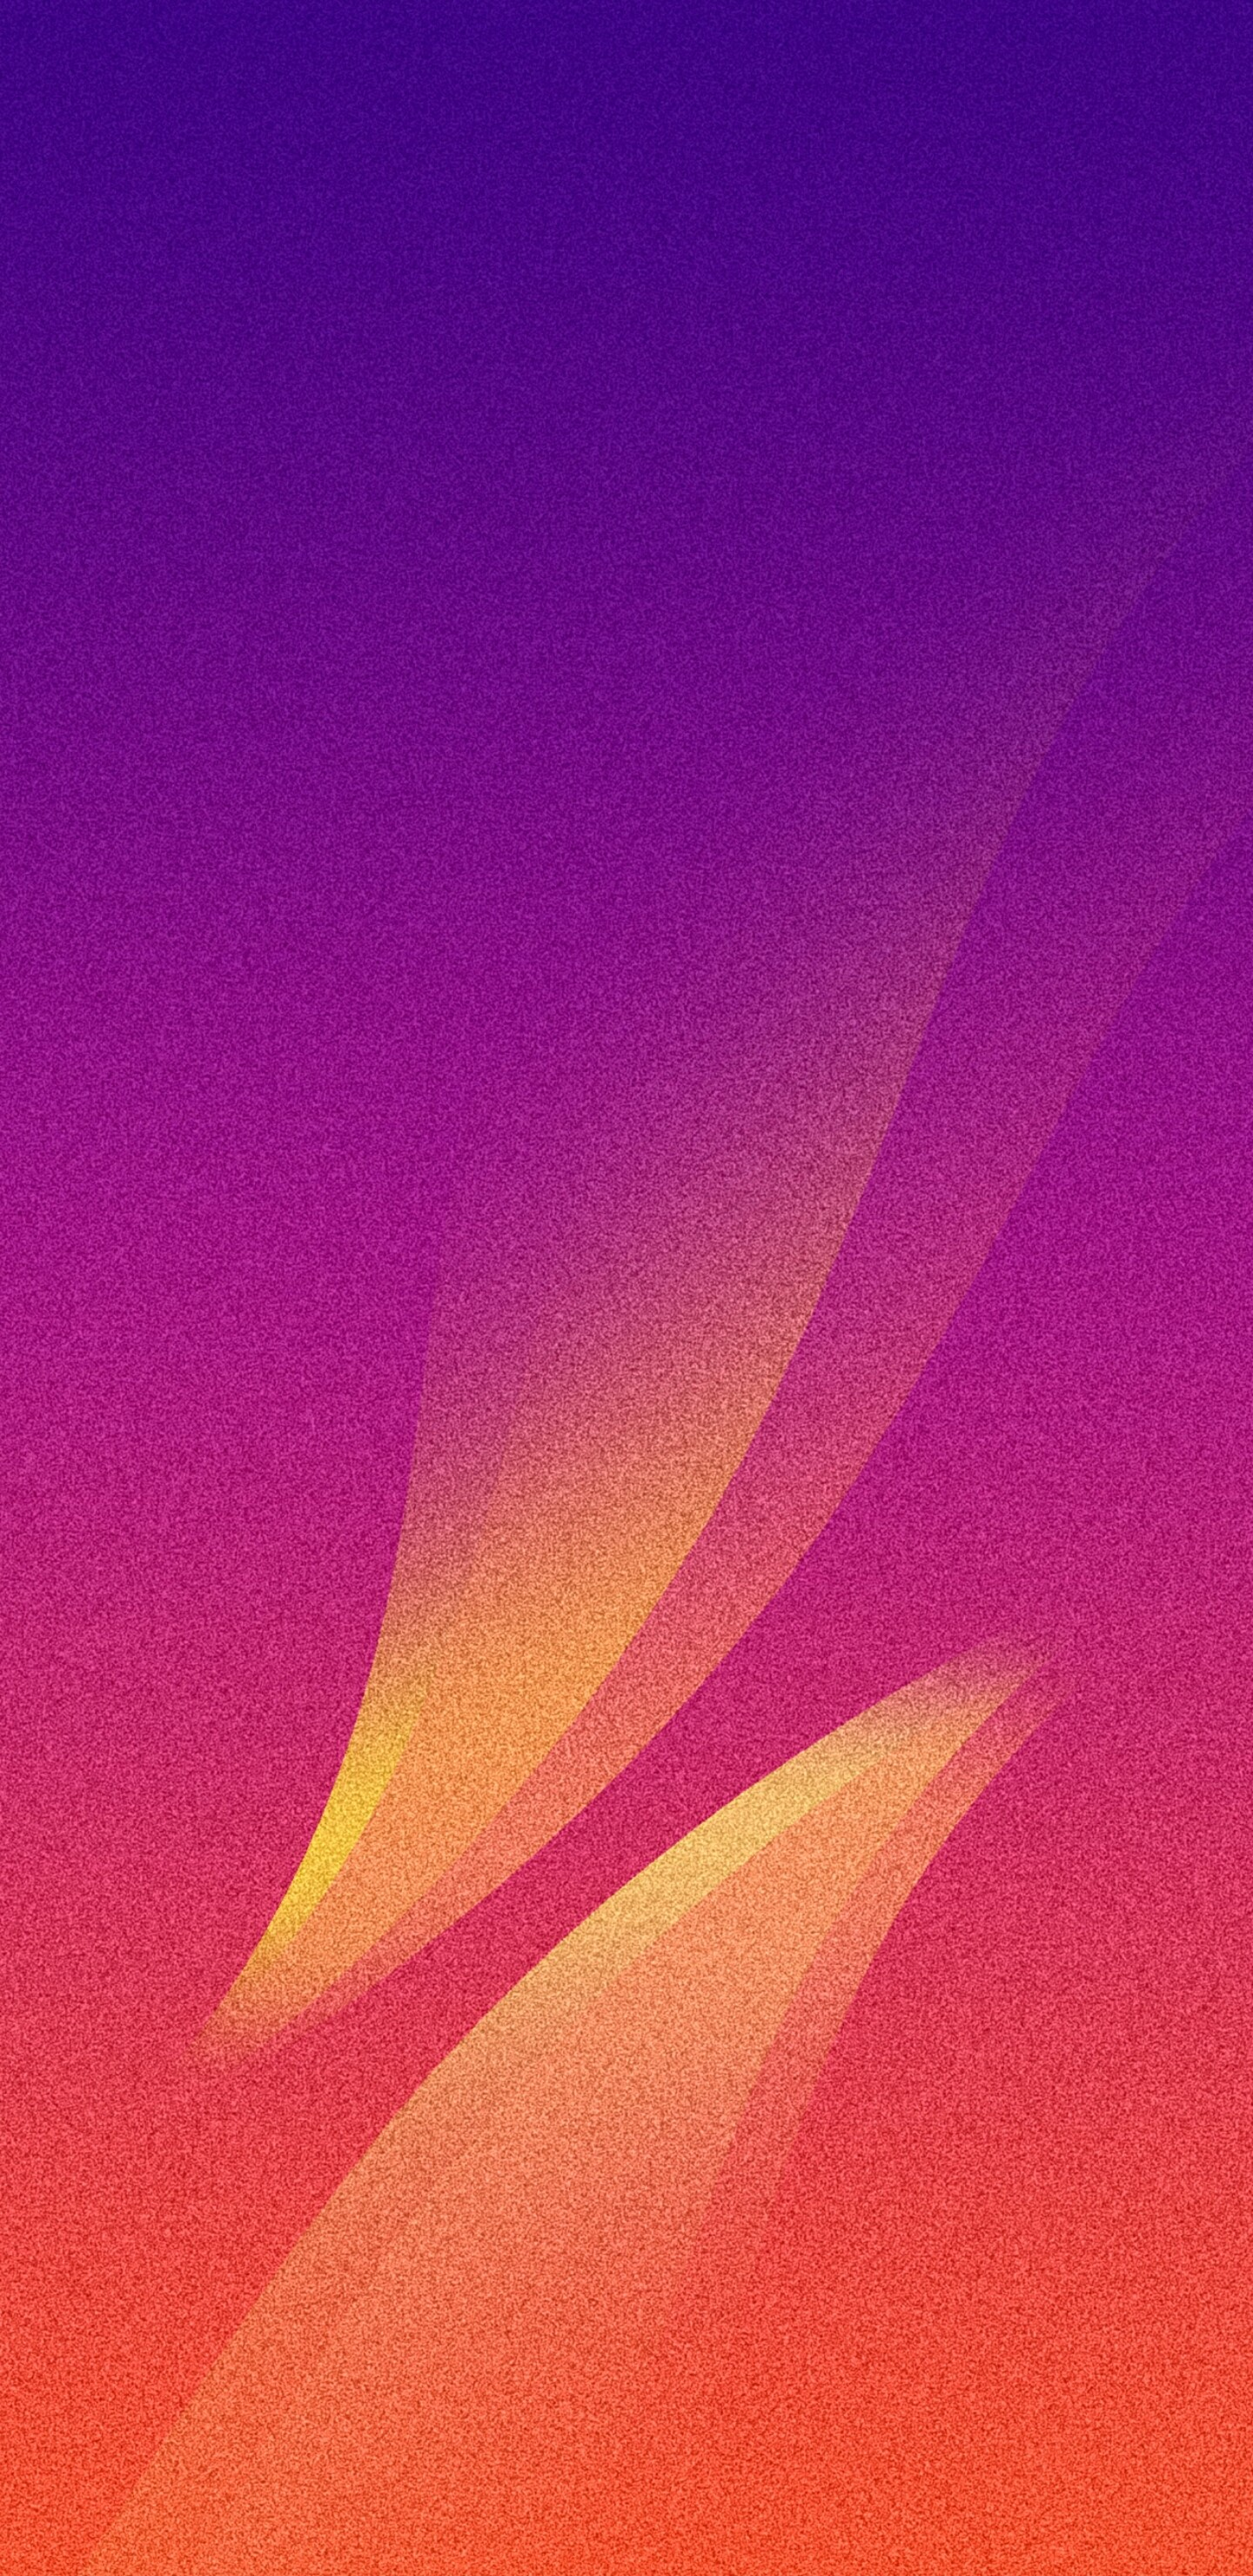 Samsung Galaxy Note 8 Wallpapers Hd